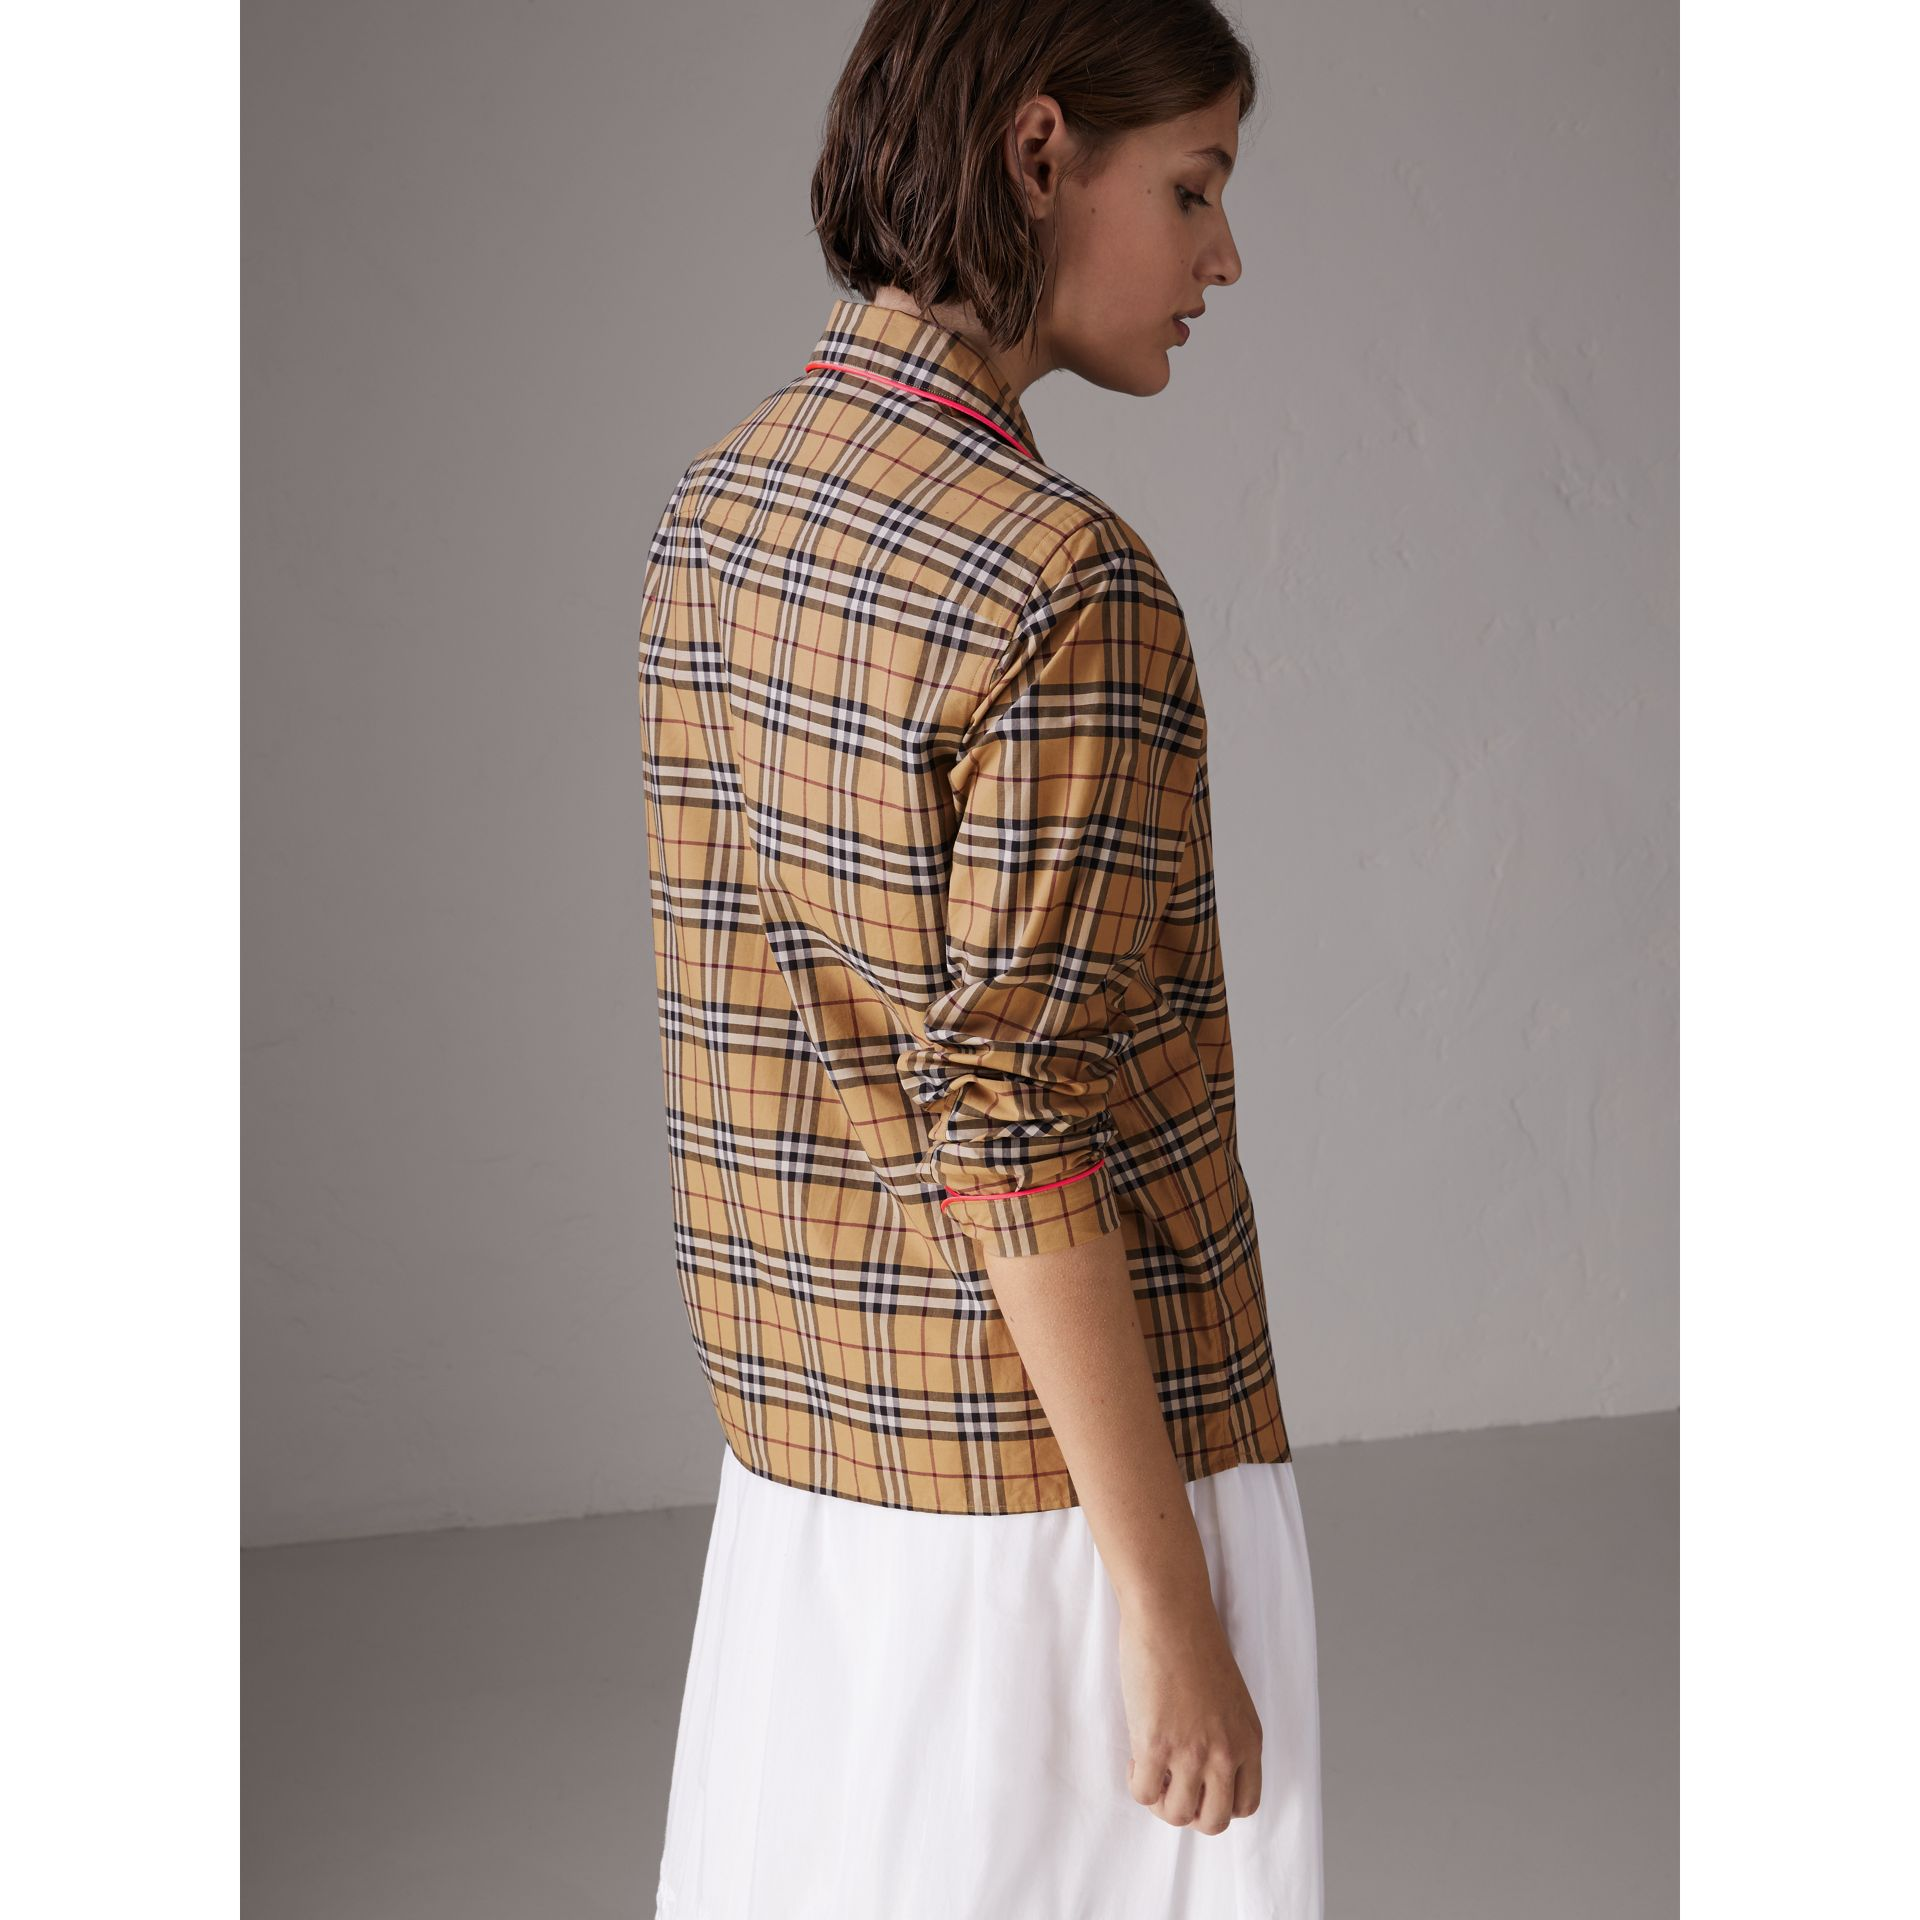 Contrast Piping Vintage Check Pyjama-style Shirt in Camel - Women | Burberry - gallery image 2